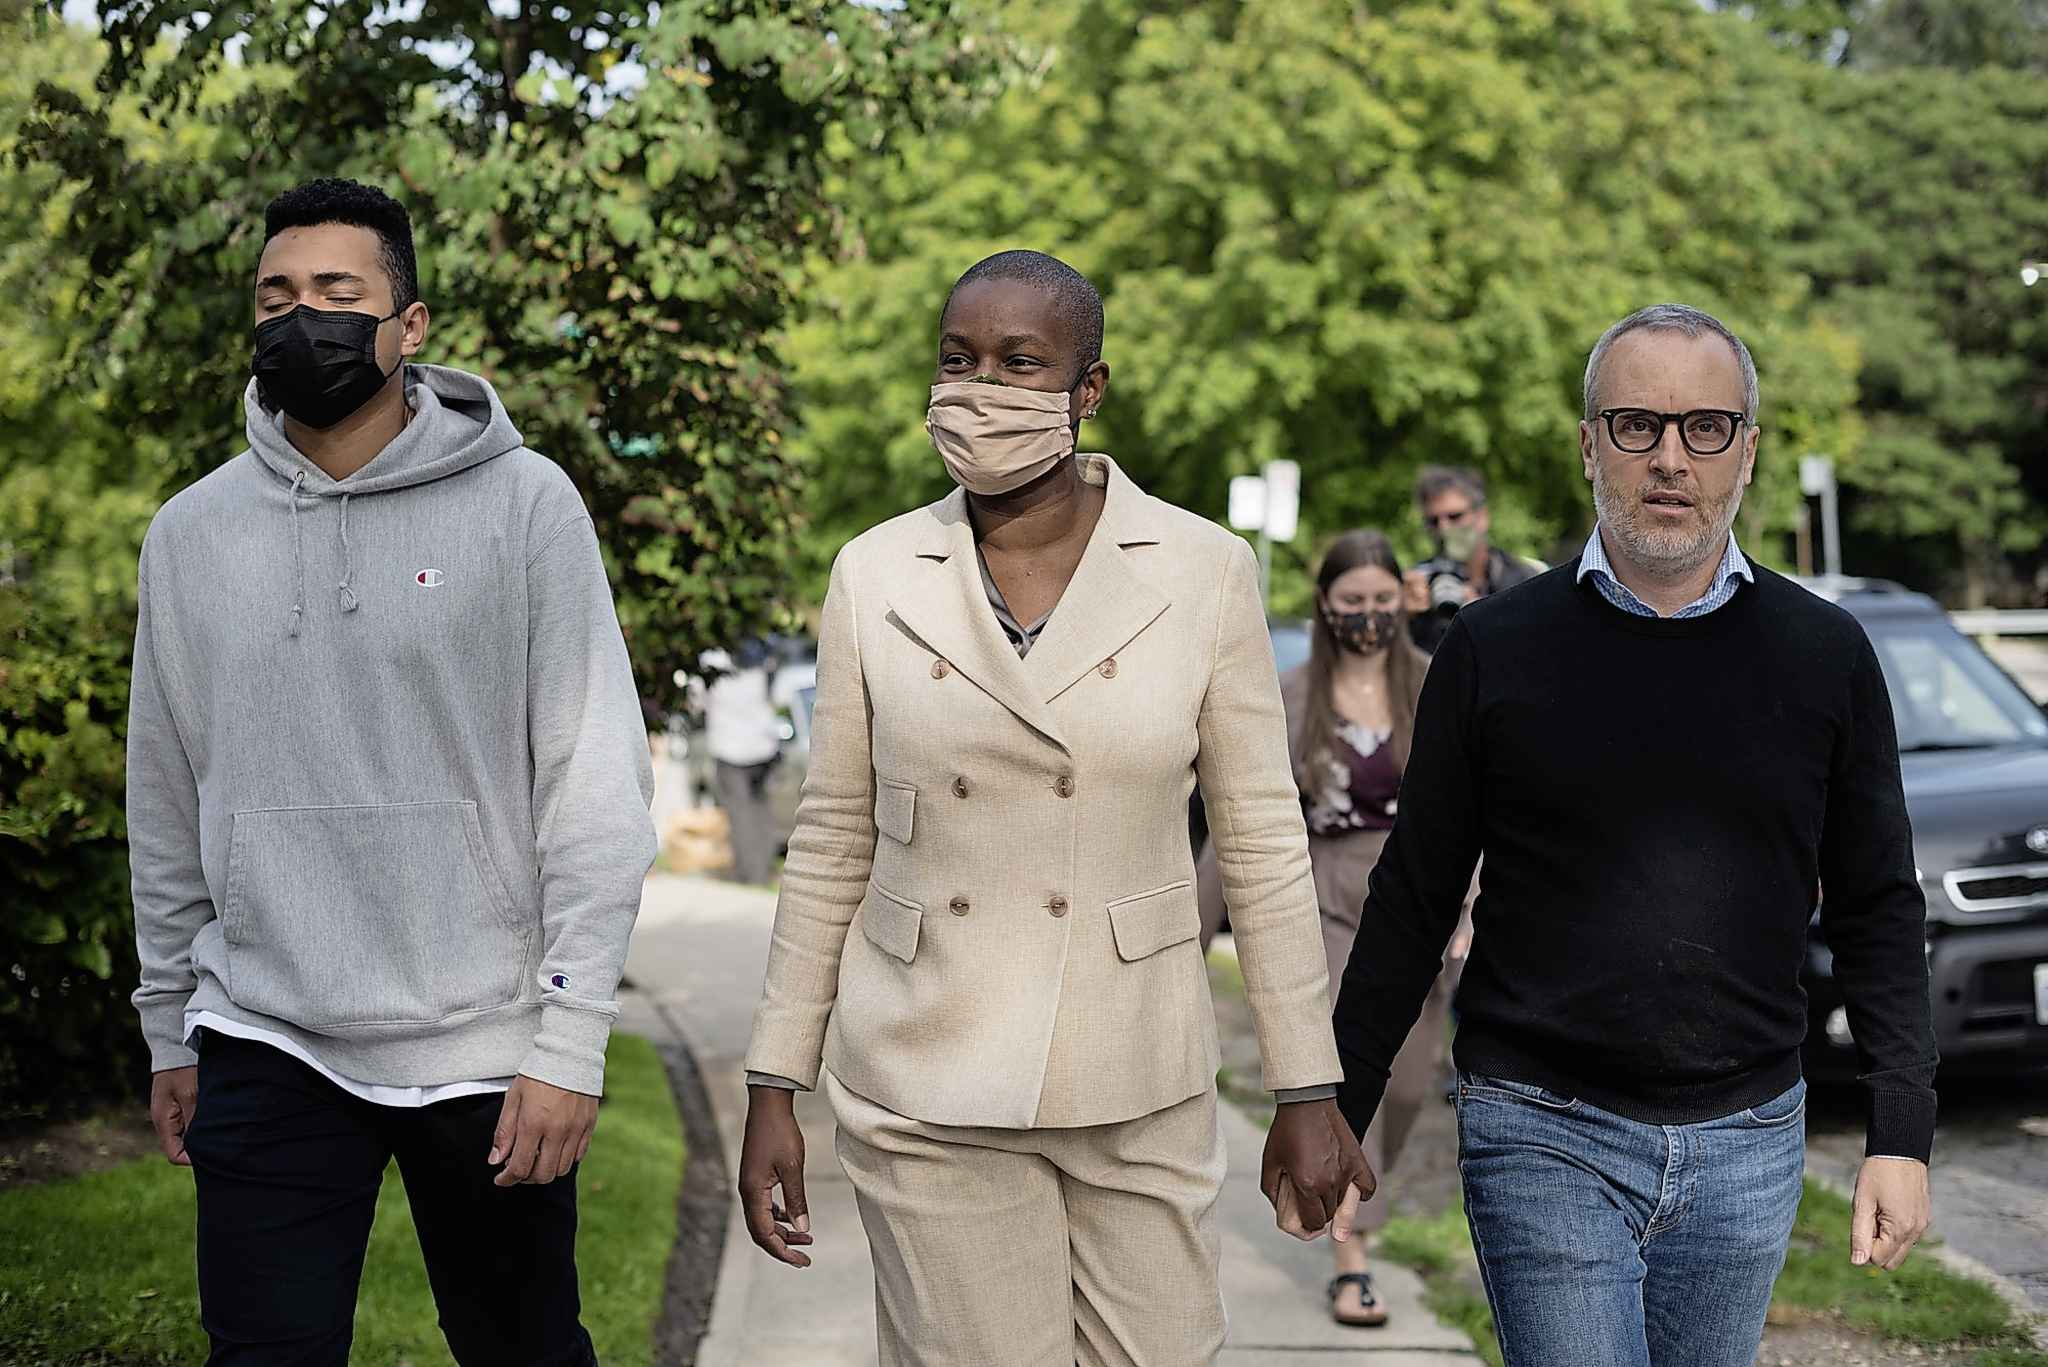 Annamie Paul holds hands with her husband, Mark Freeman, as they walk alongside their son, after a press conference announcing she is officially stepping down as Green Party leader, at Suydam Park in Toronto on, Monday, September 27, 2021. THE CANADIAN PRESS/ Tijana Martin